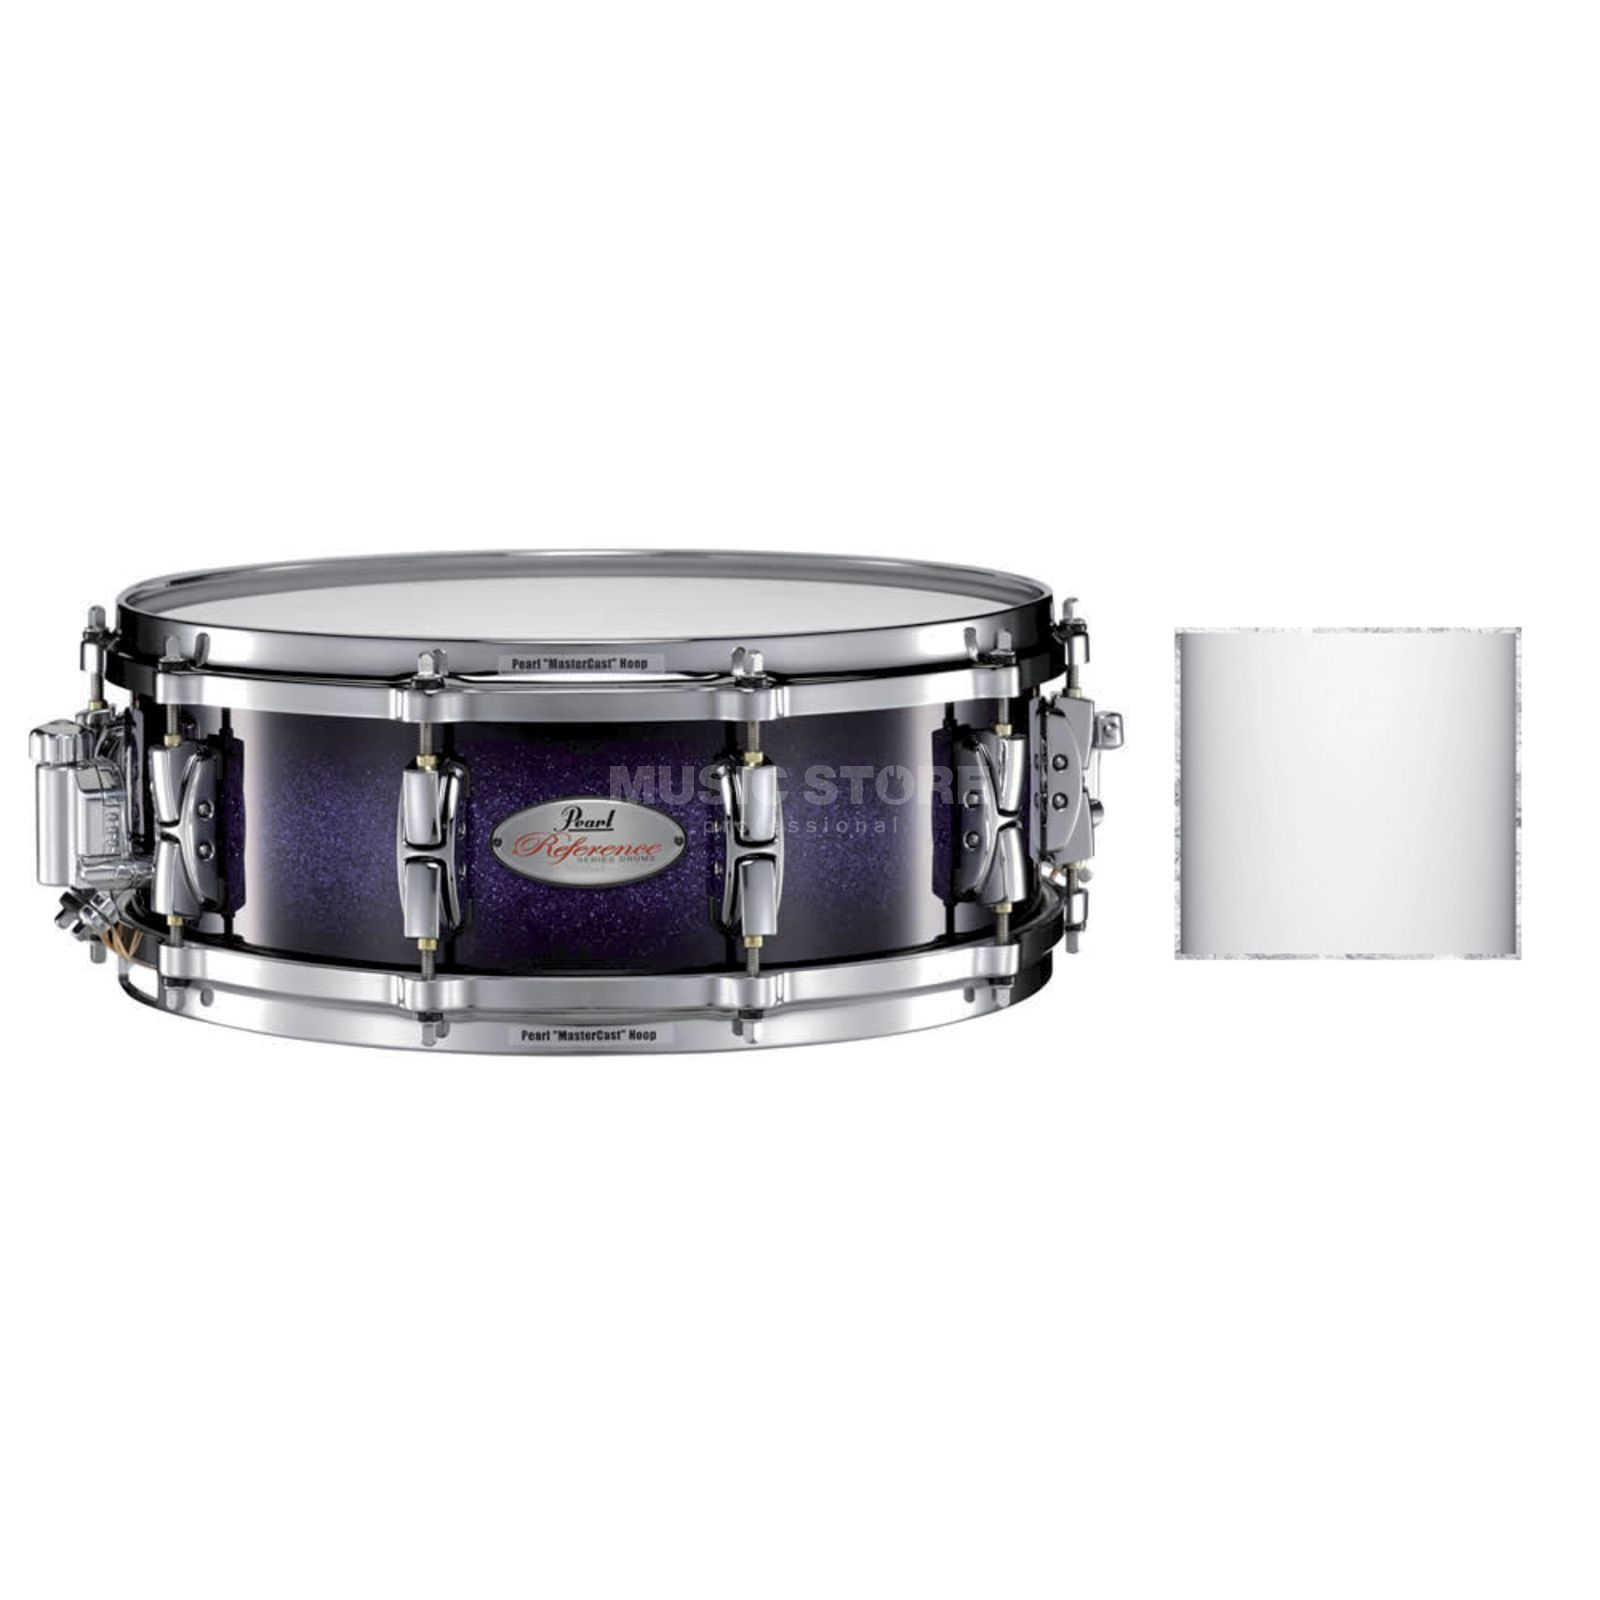 "Pearl RF1450S/C Reference Snare 14""x5"", Arctic White #109 Produktbild"